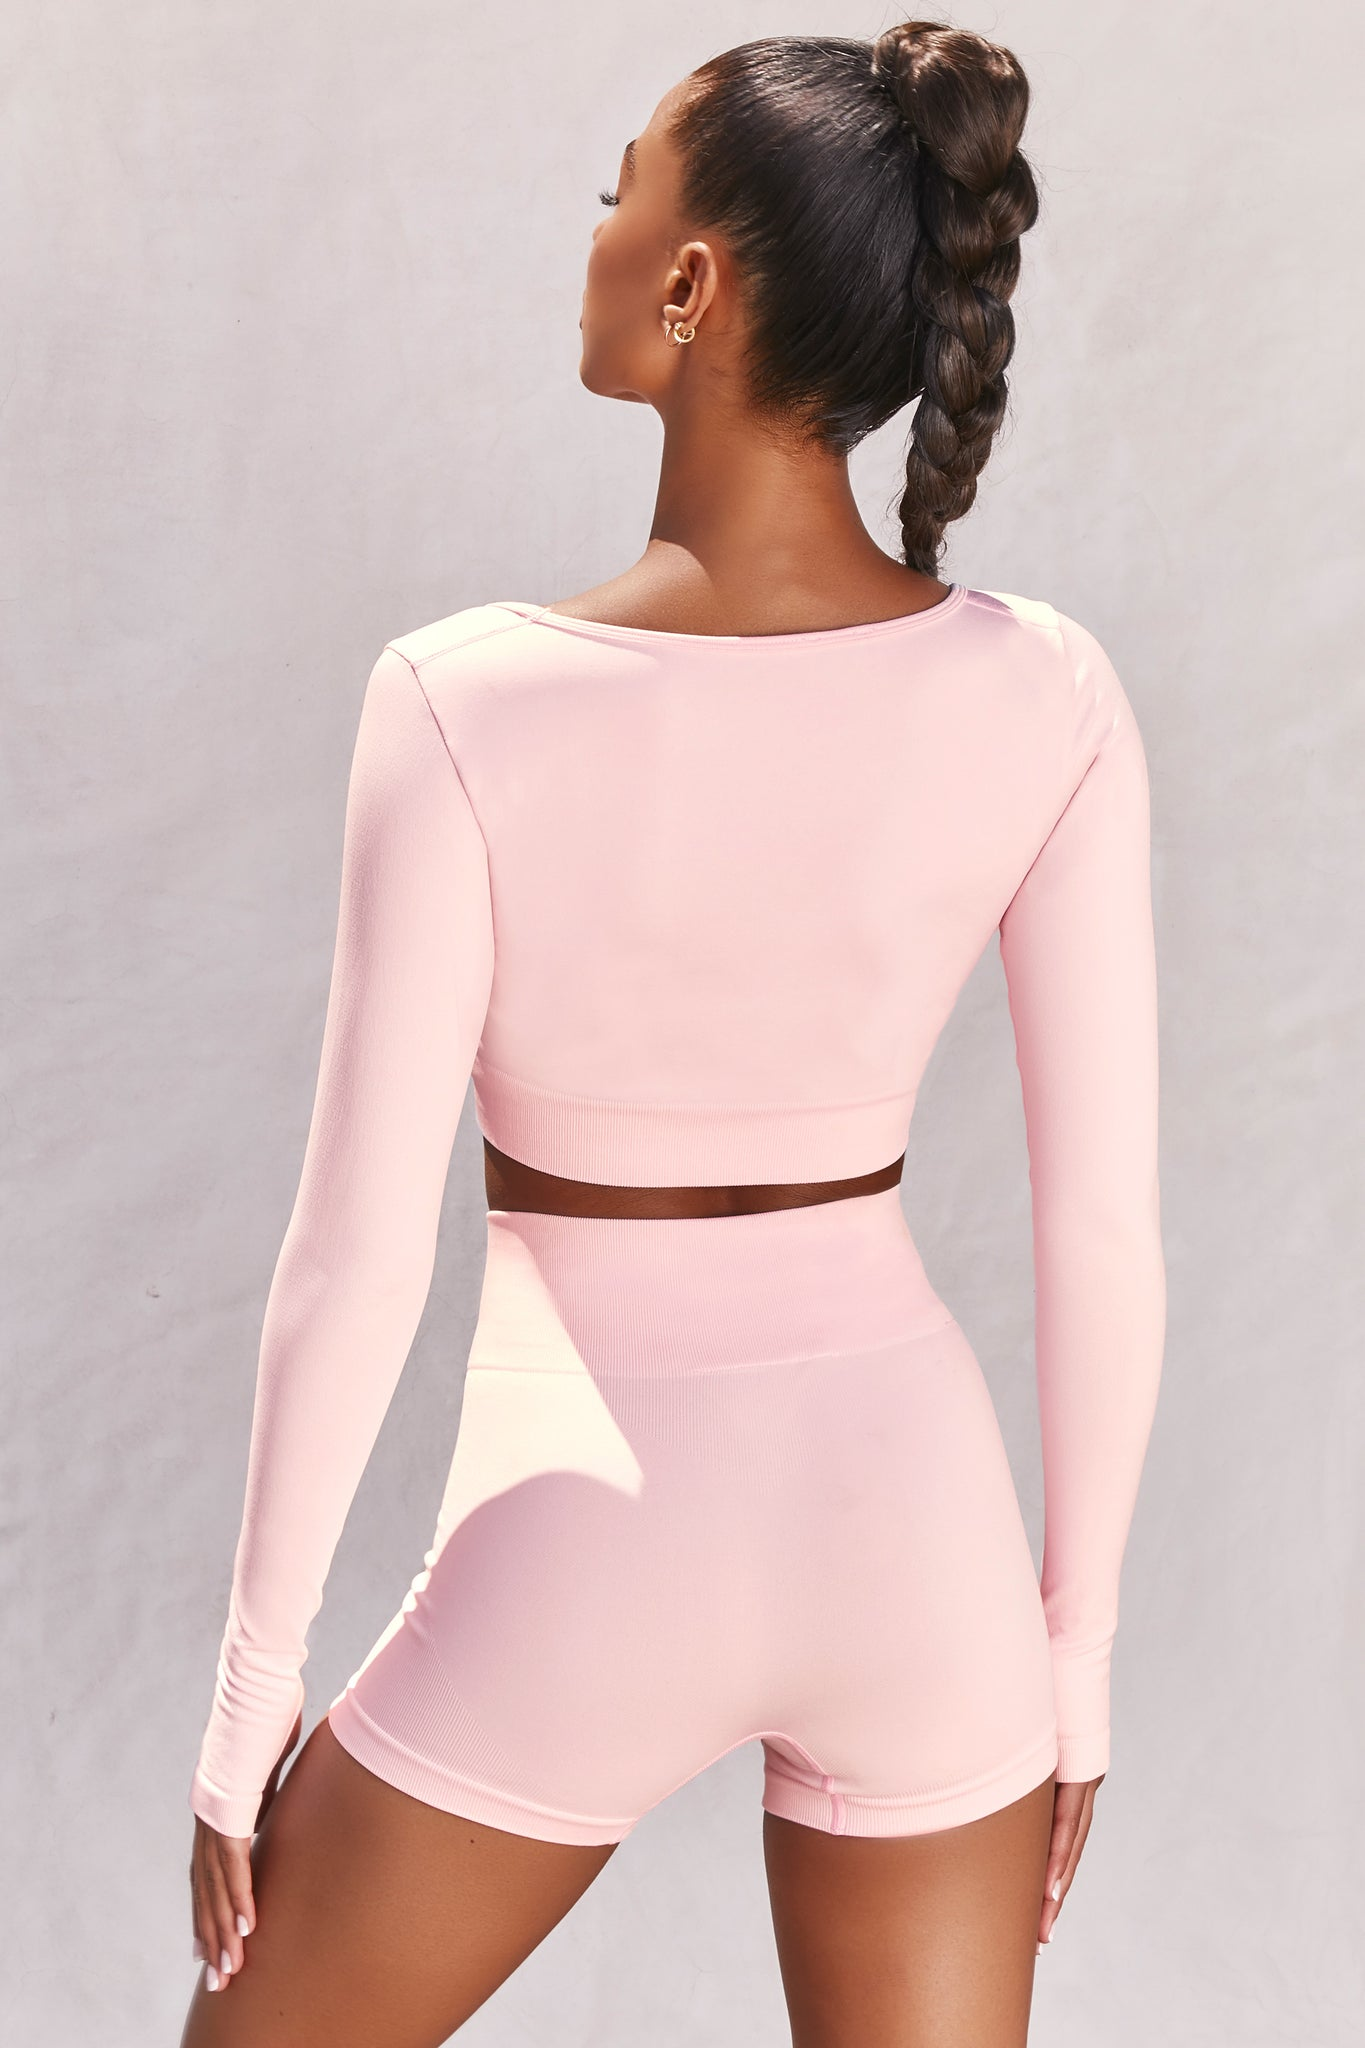 Plain light pink seamless long sleeve crop top with low scoop neck and thumb holes. Image 3 of 6.